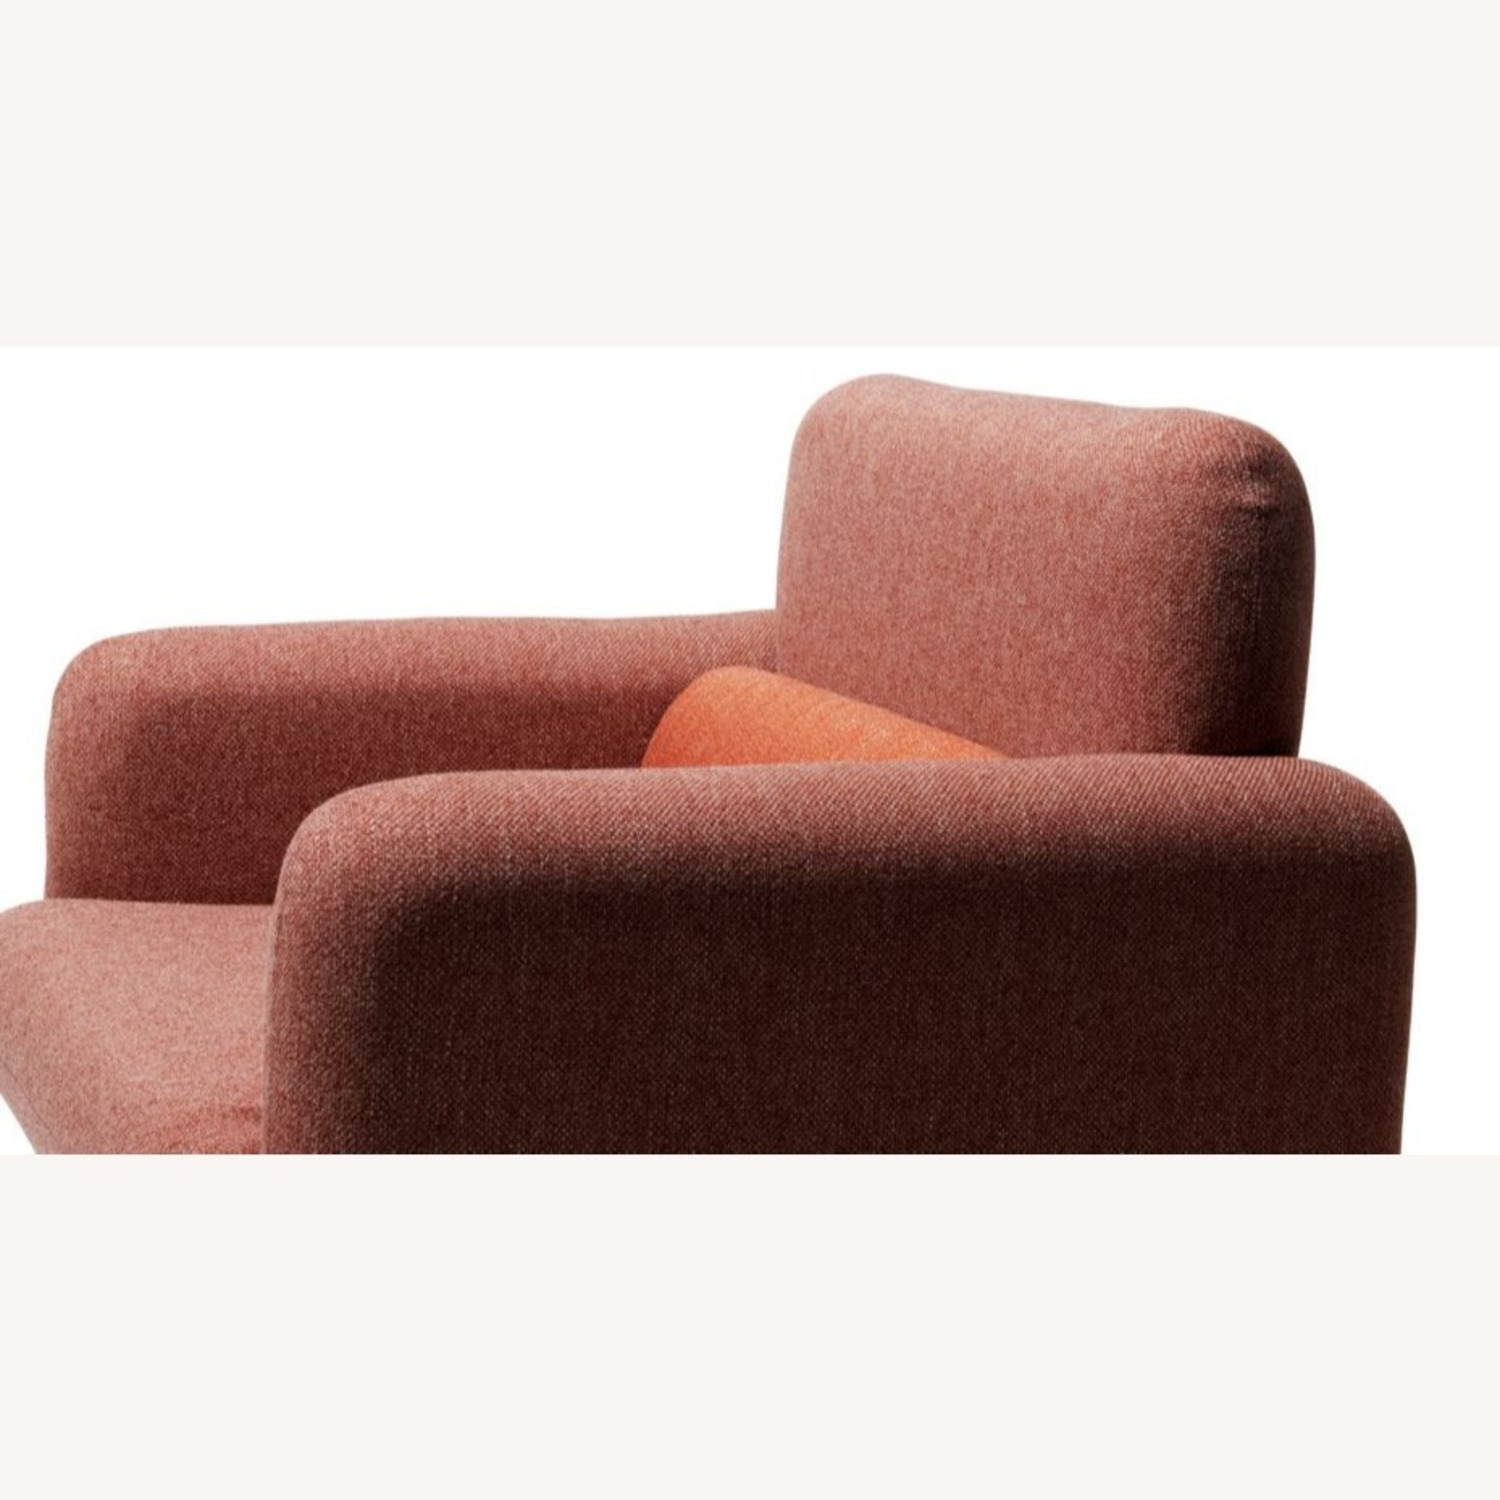 Industry West Plume Lounge Chair - Red/Pink - image-3